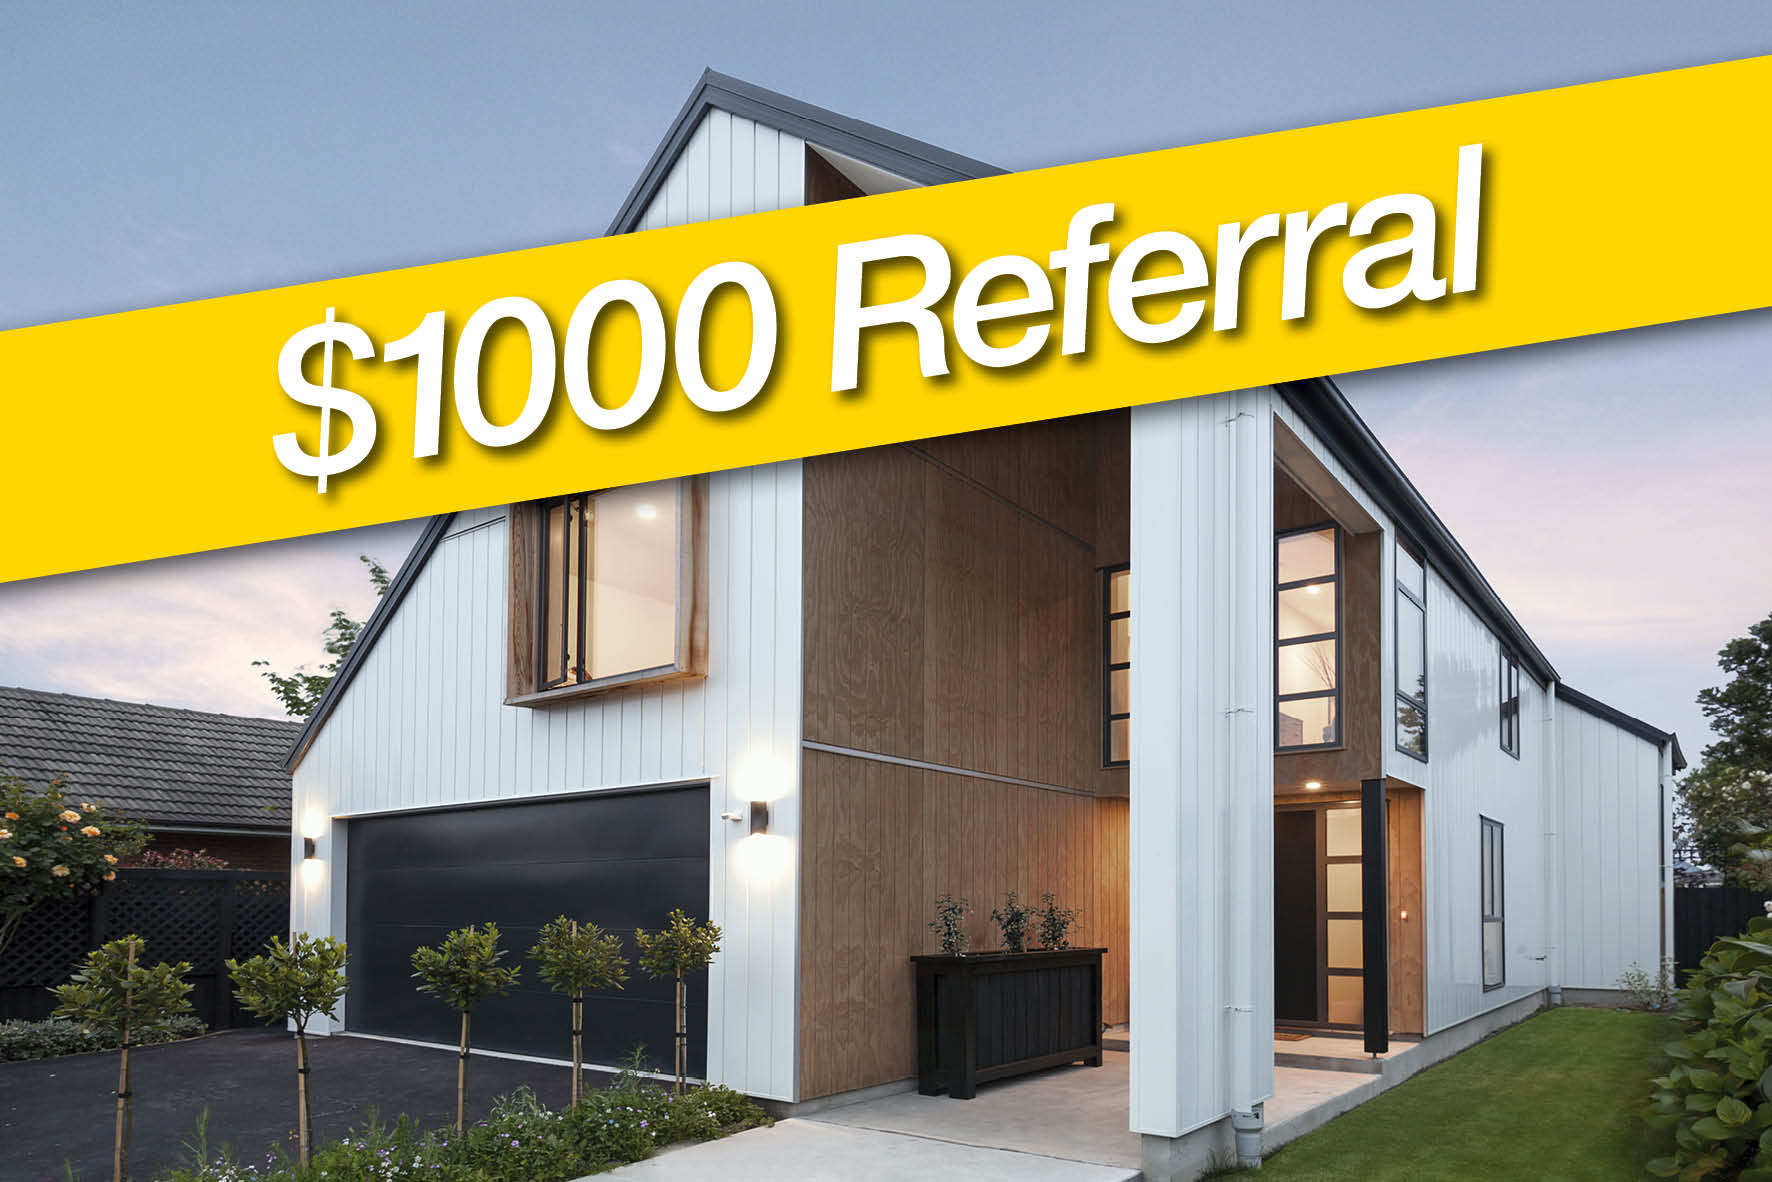 NEW! $1000 Referral Programme